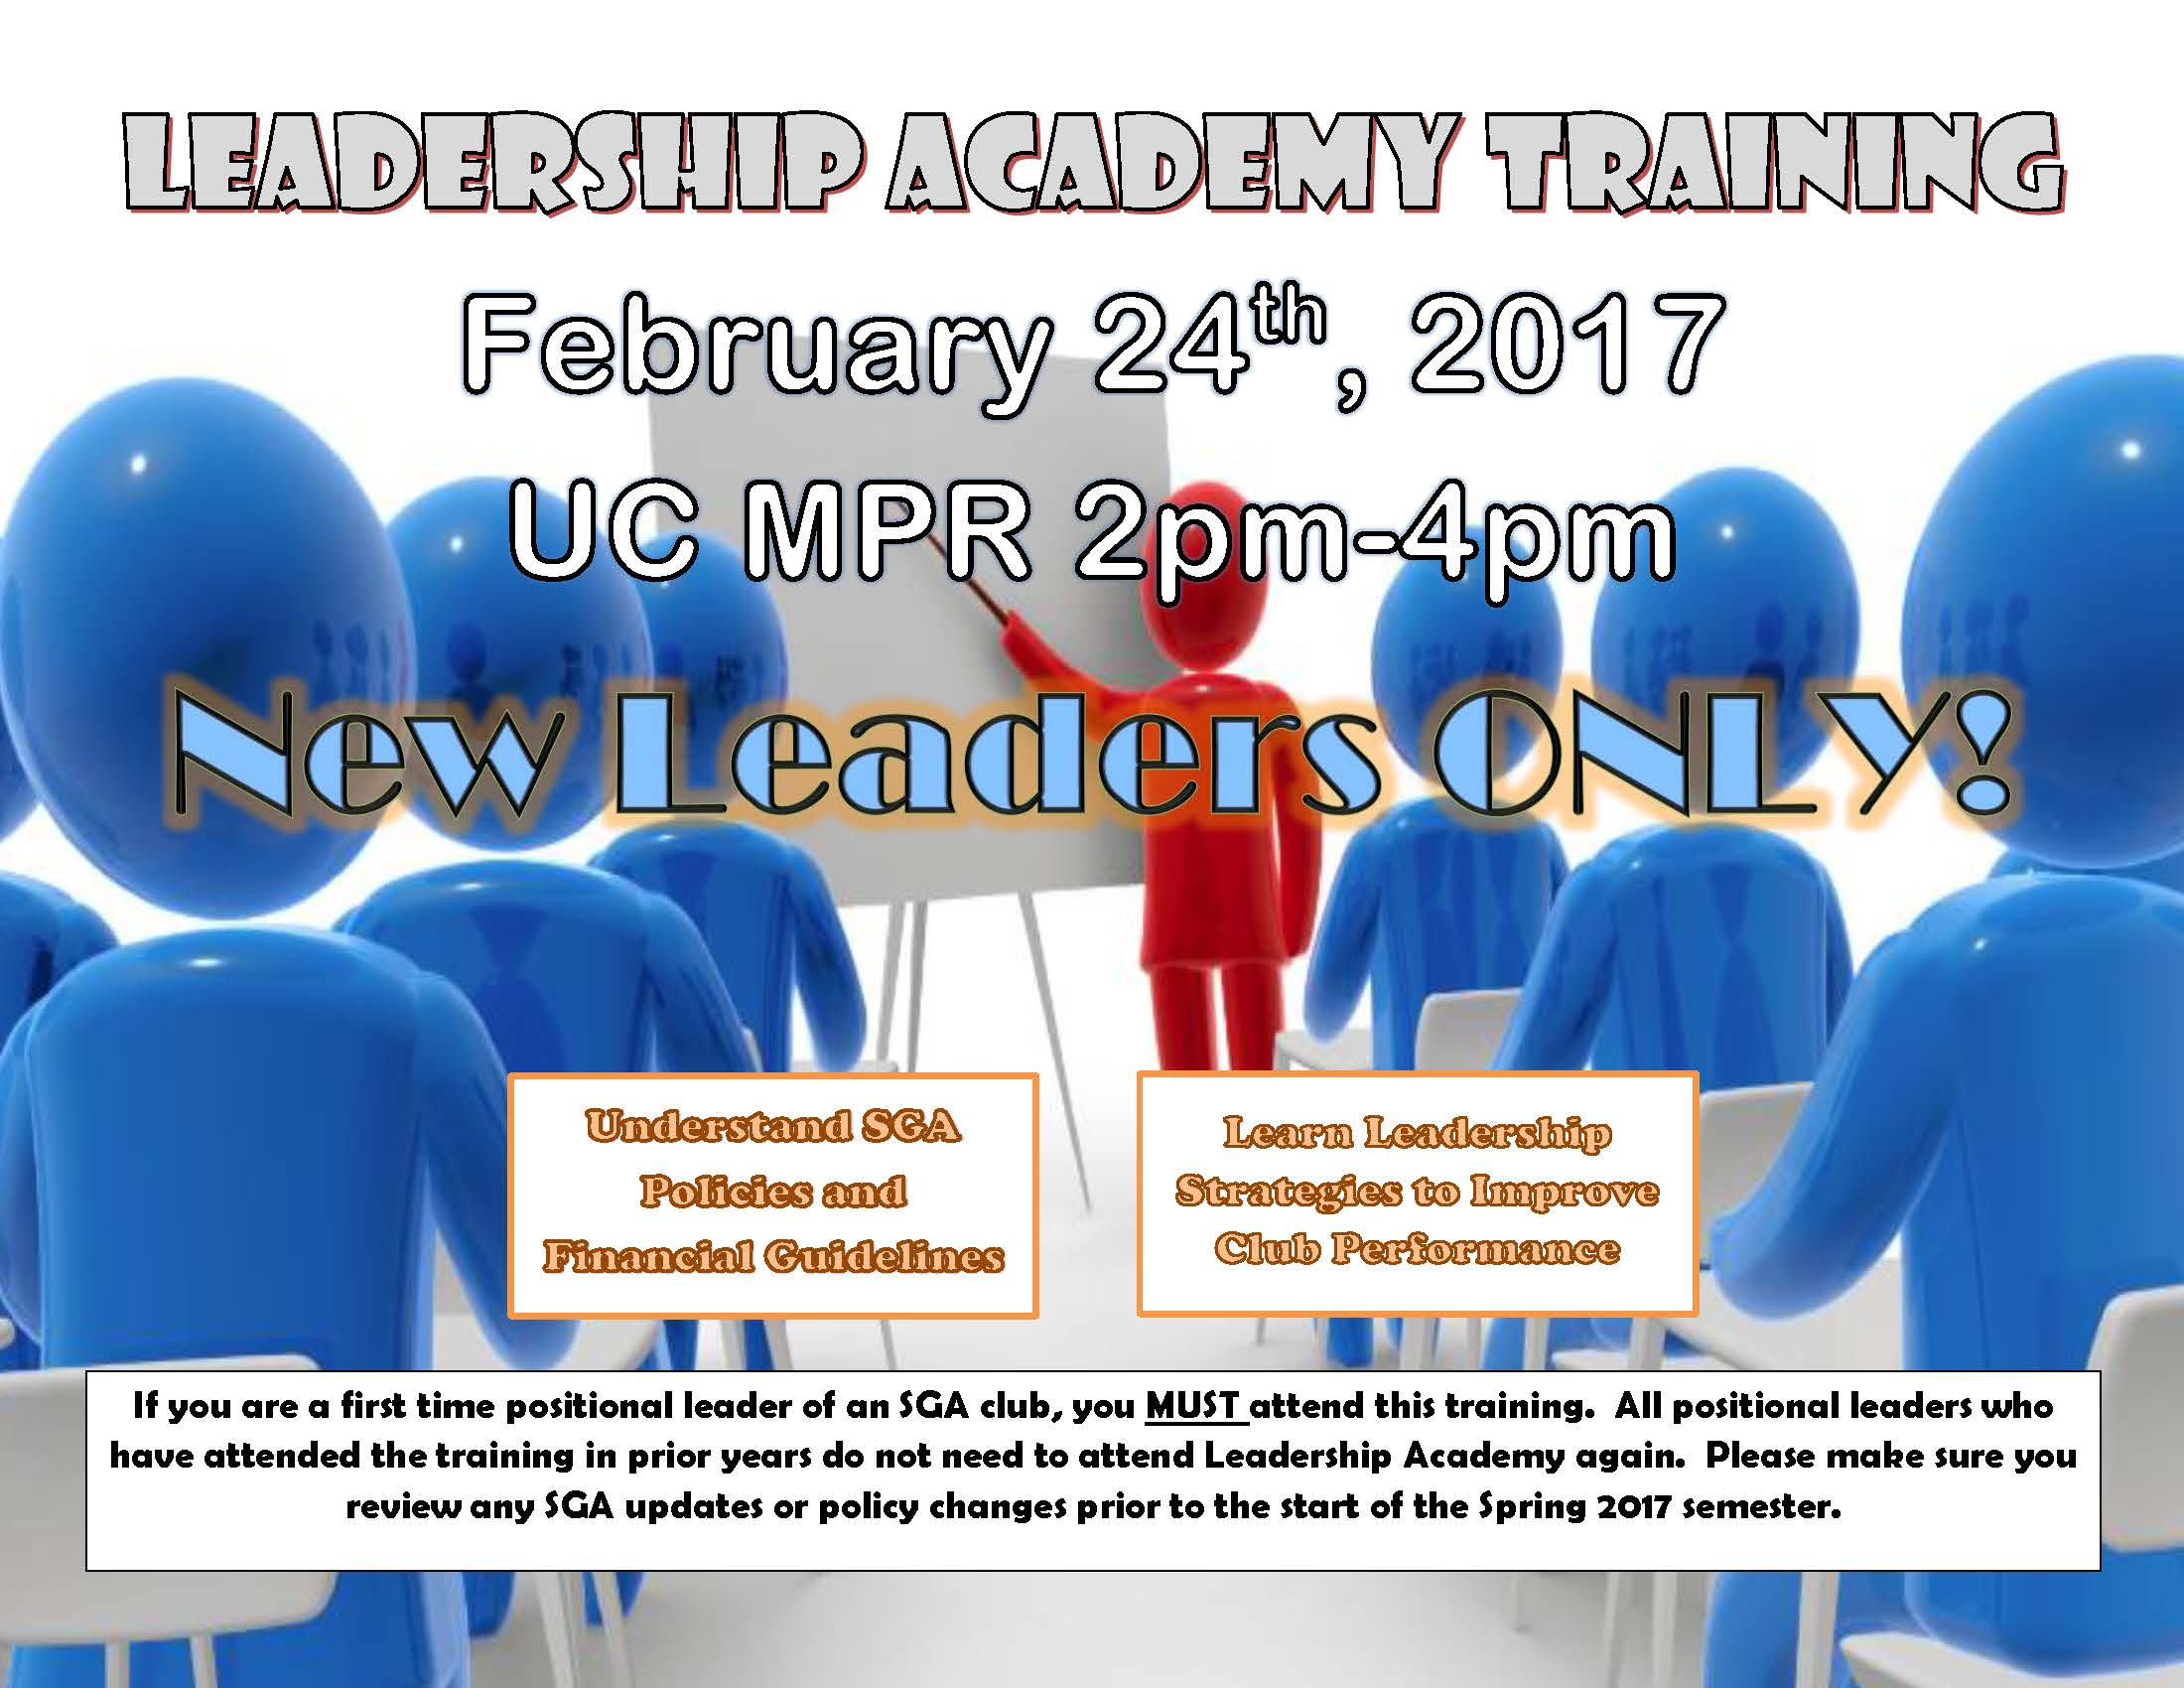 Leadership Academy Flier - February 24, 2017